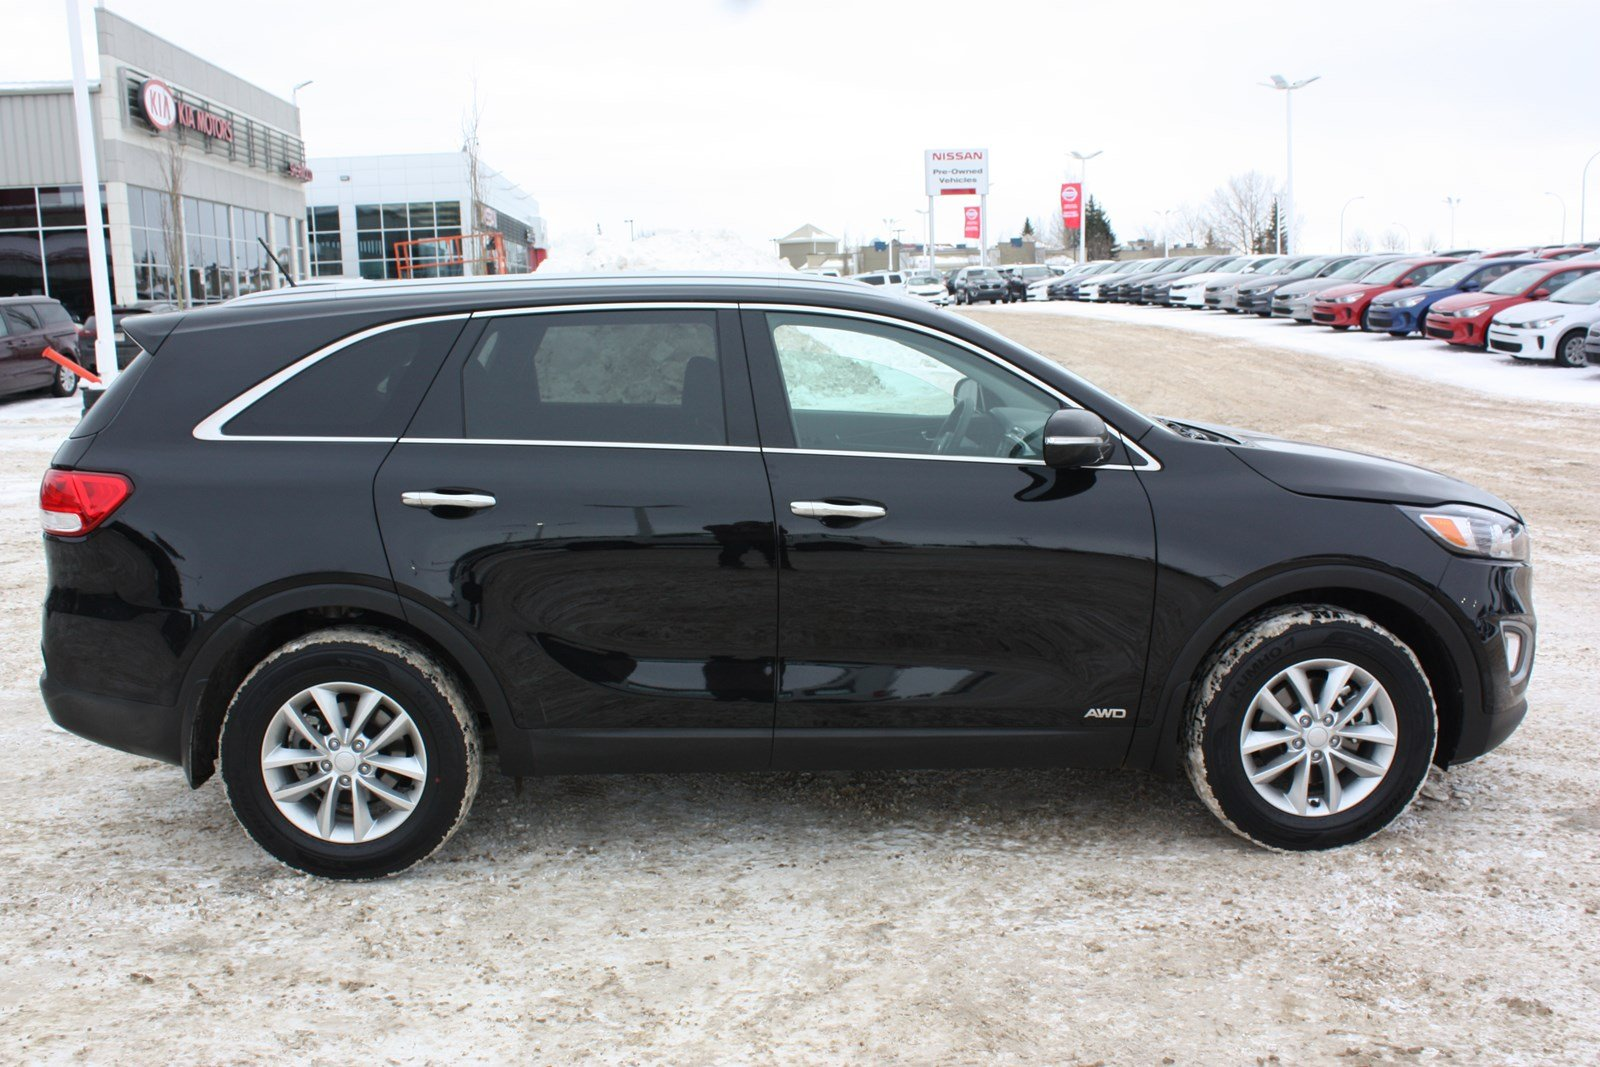 Pre owned 2017 kia sorento lx accident free heated seats bluetooth pre owned 2017 kia sorento lx accident free heated seats bluetooth a publicscrutiny Image collections